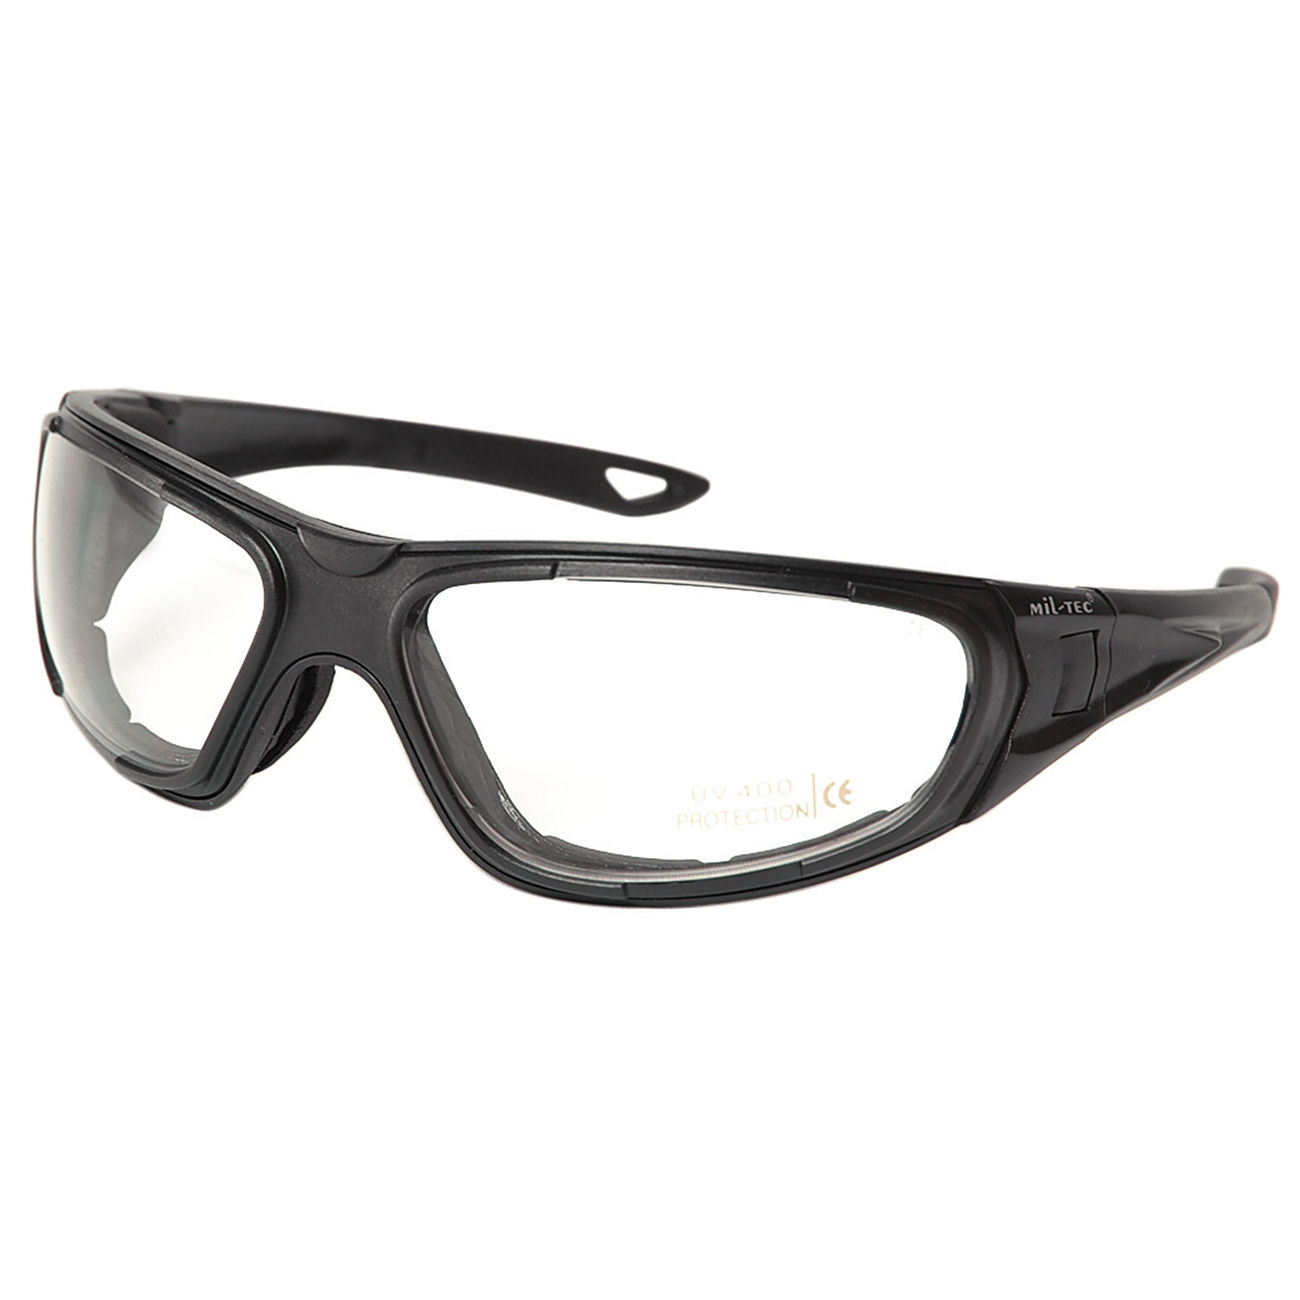 Mil-Tec Brille Tactical Goggle 3in1 schwarz 1